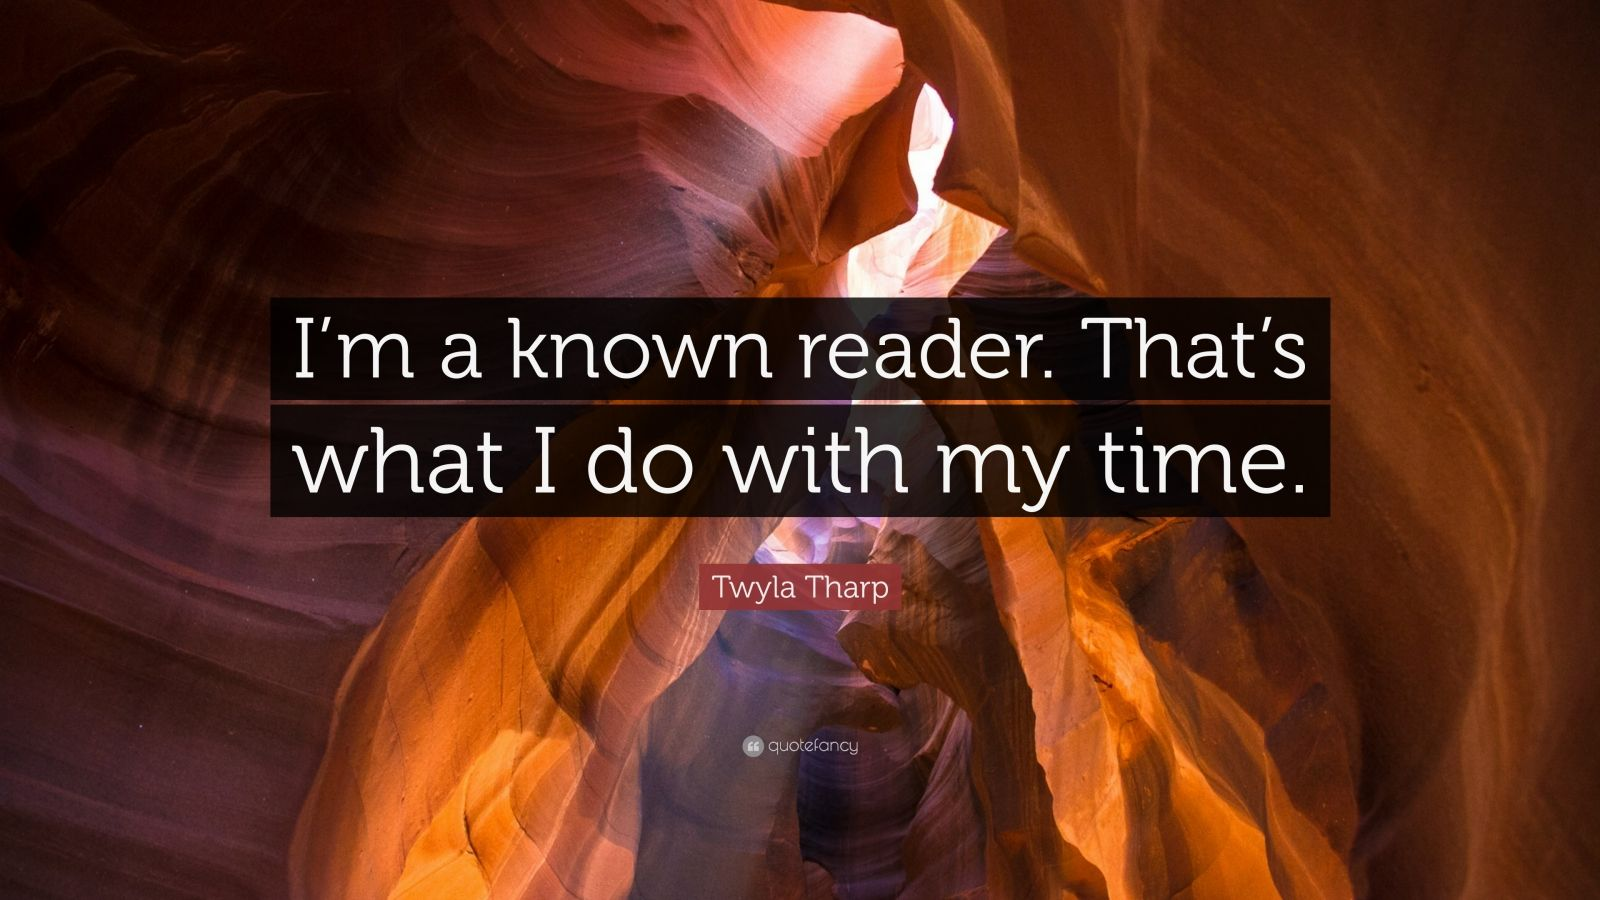 """Twyla Tharp Quote: """"I'm a known reader. That's what I do with my time."""""""